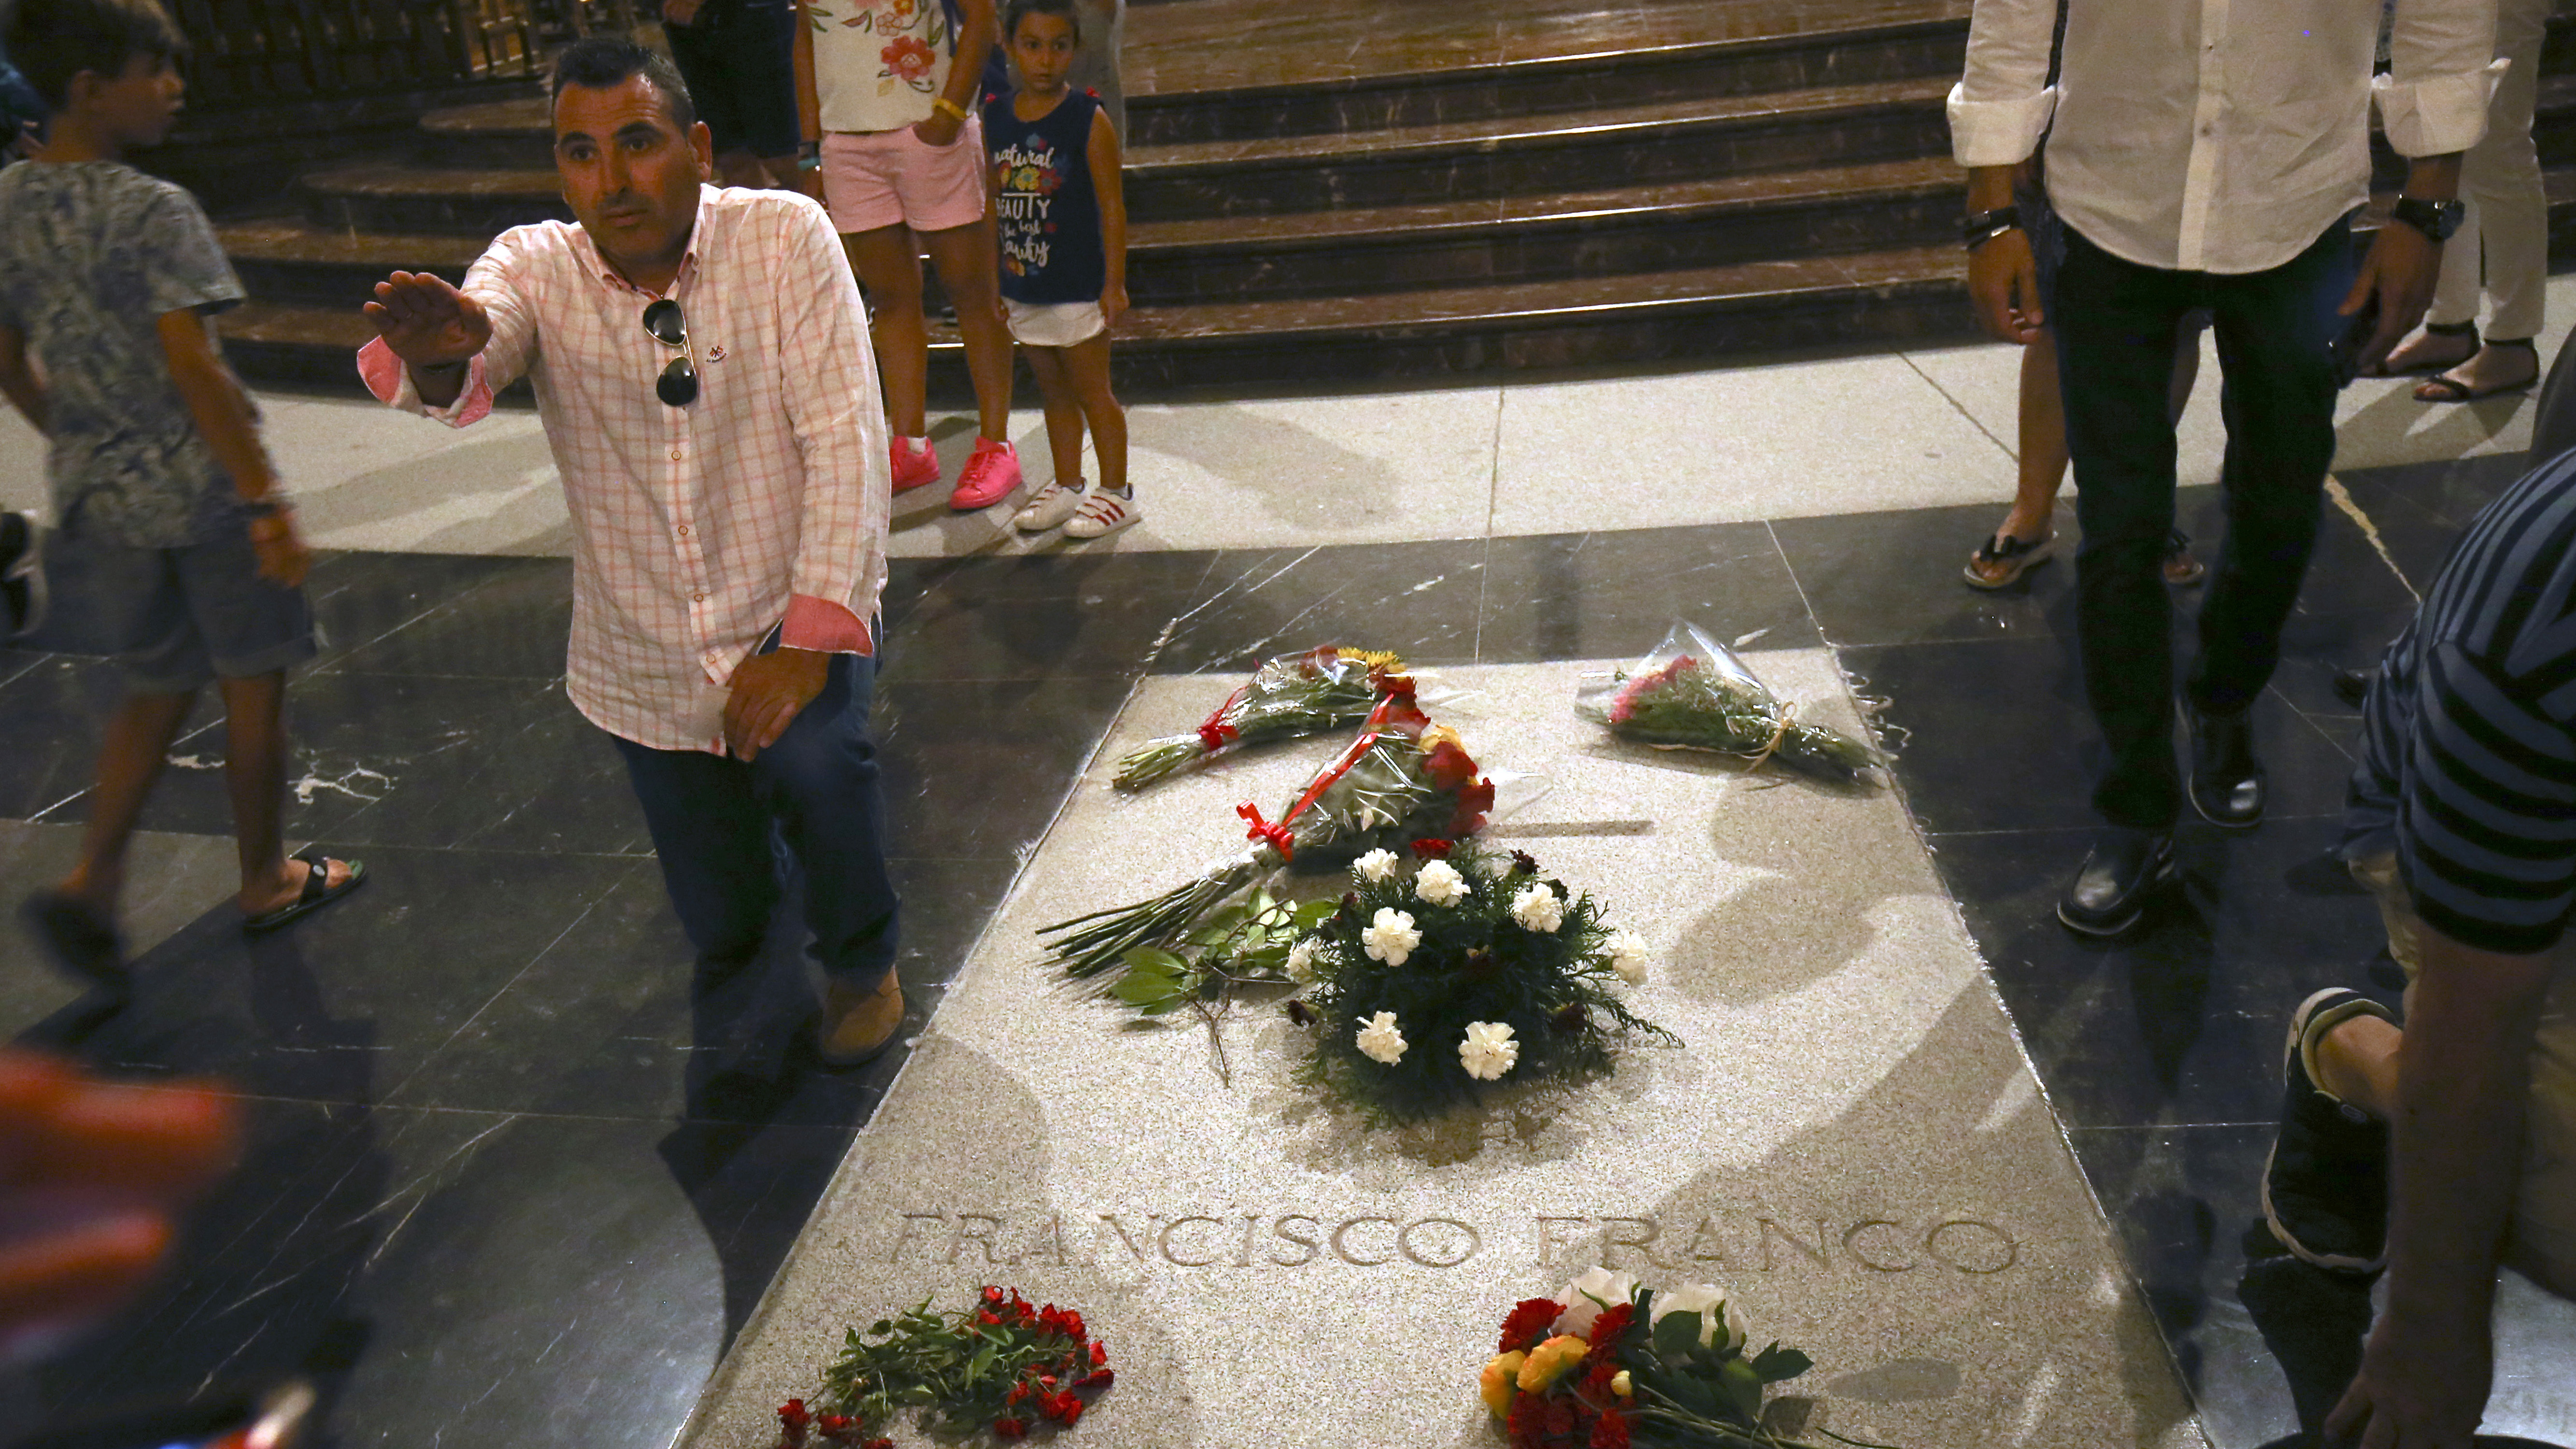 Spain Plans To Remove Franco's Remains From A Memorial Angering His Supporters